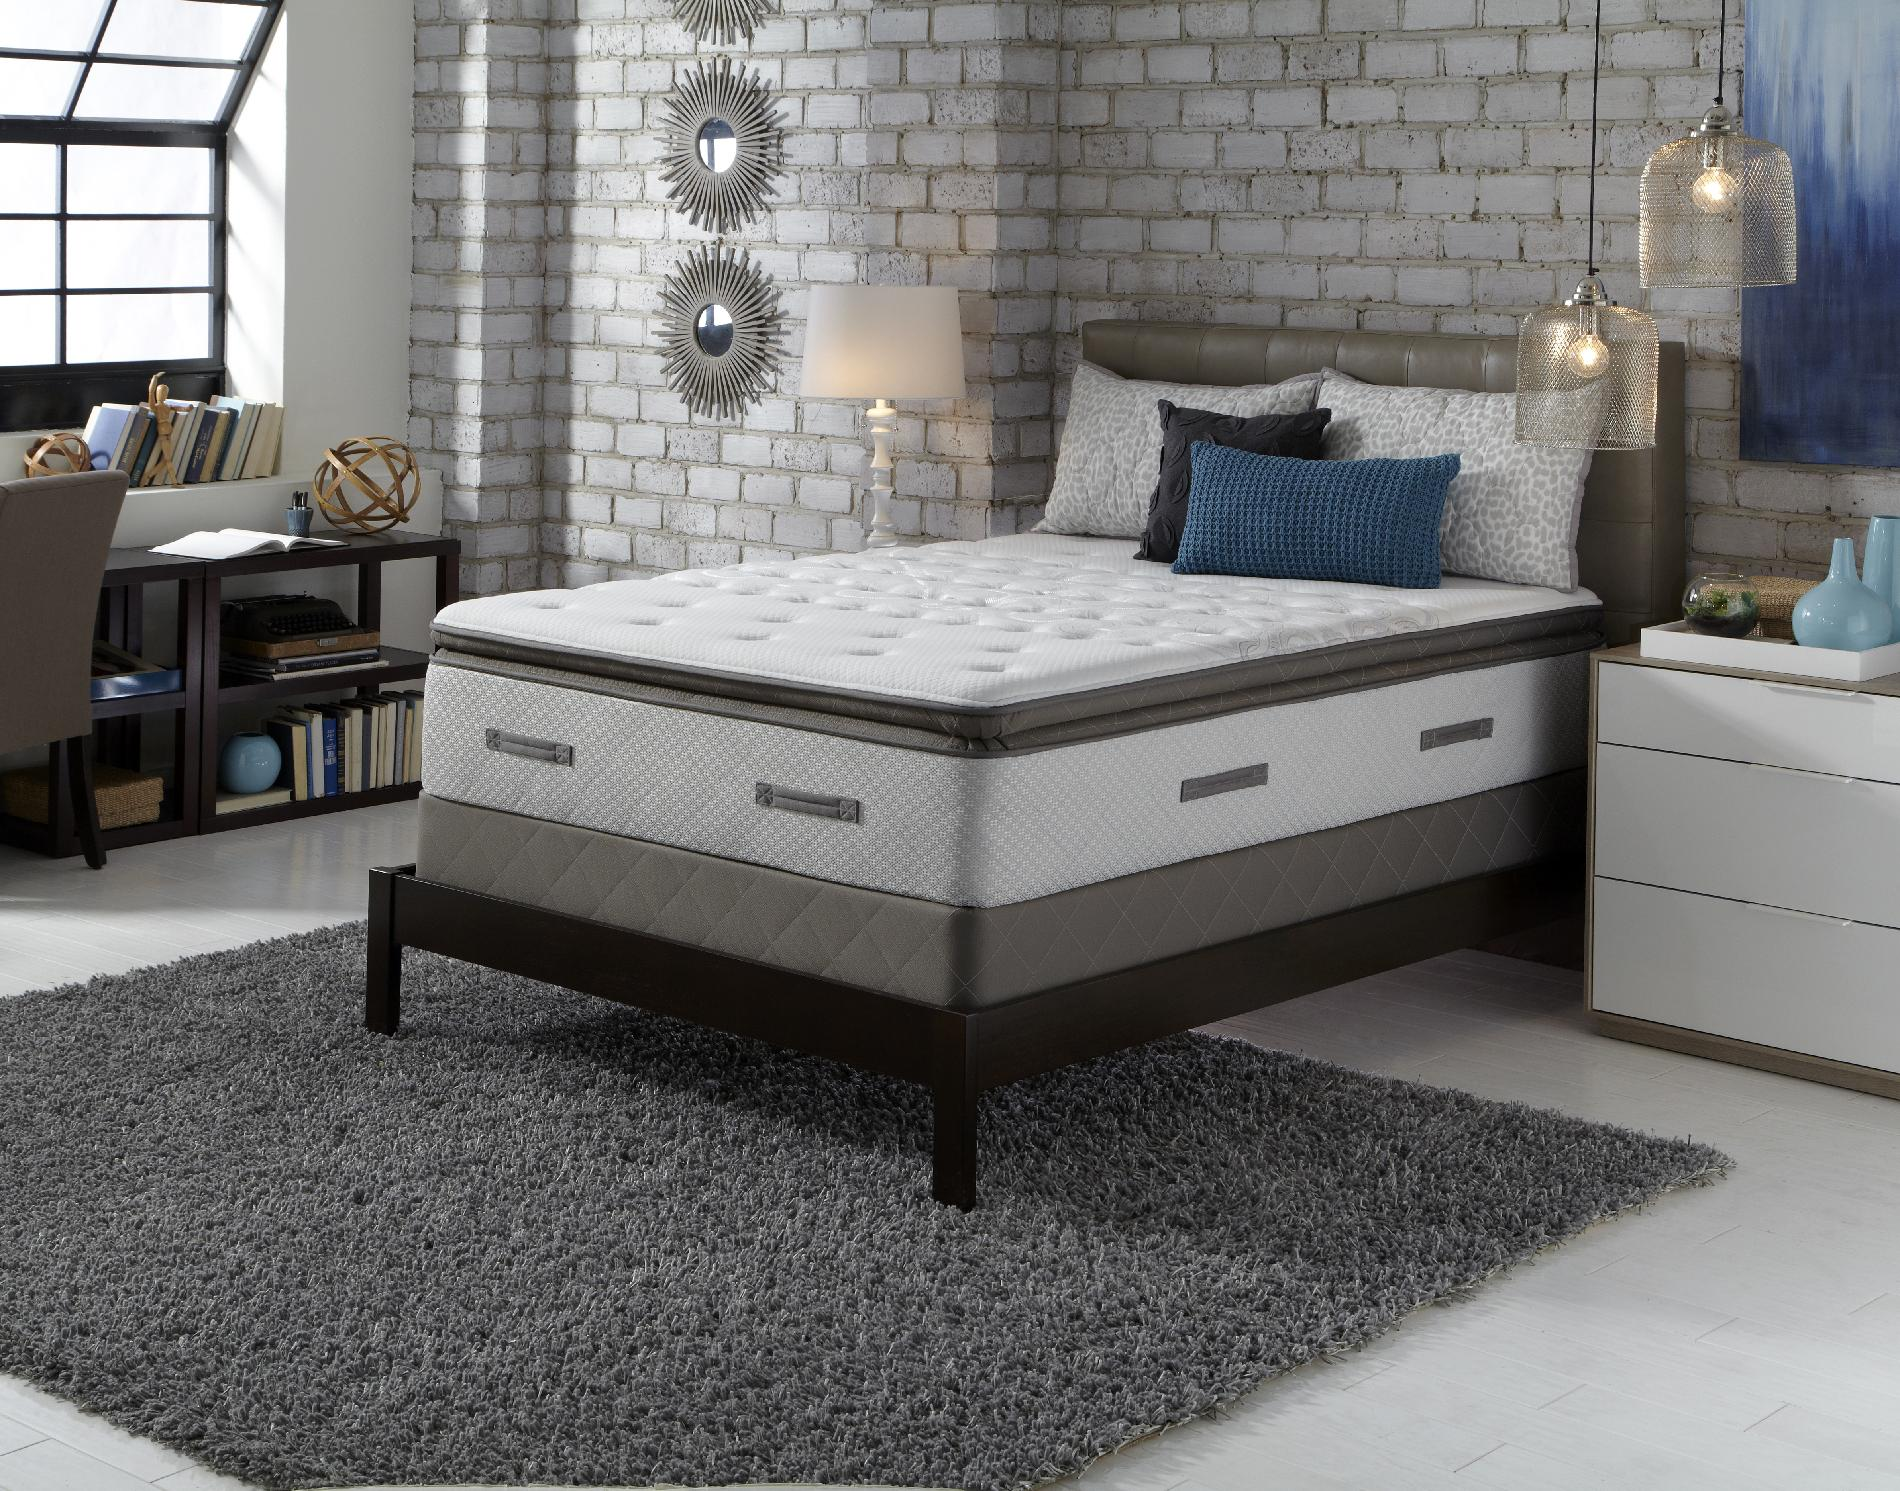 Sealy Posturepedic Granite Bay Ti2 II, Cushion Firm Euro Pillowtop, Full Extra Long Mattress Only